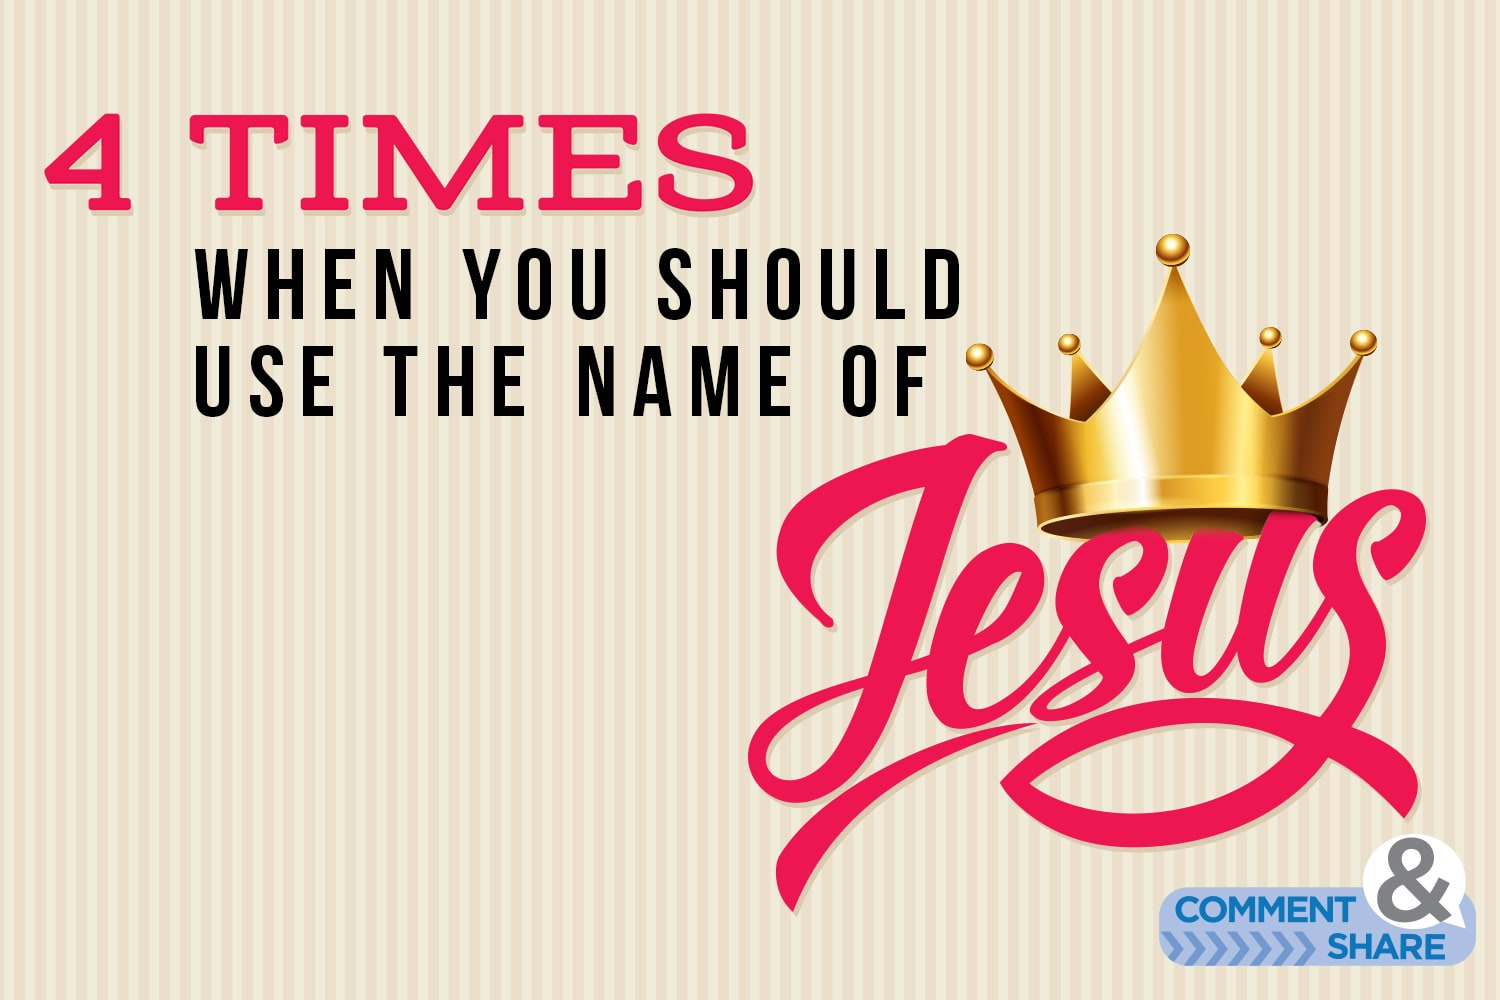 4 Times You Should Use the Name of Jesus